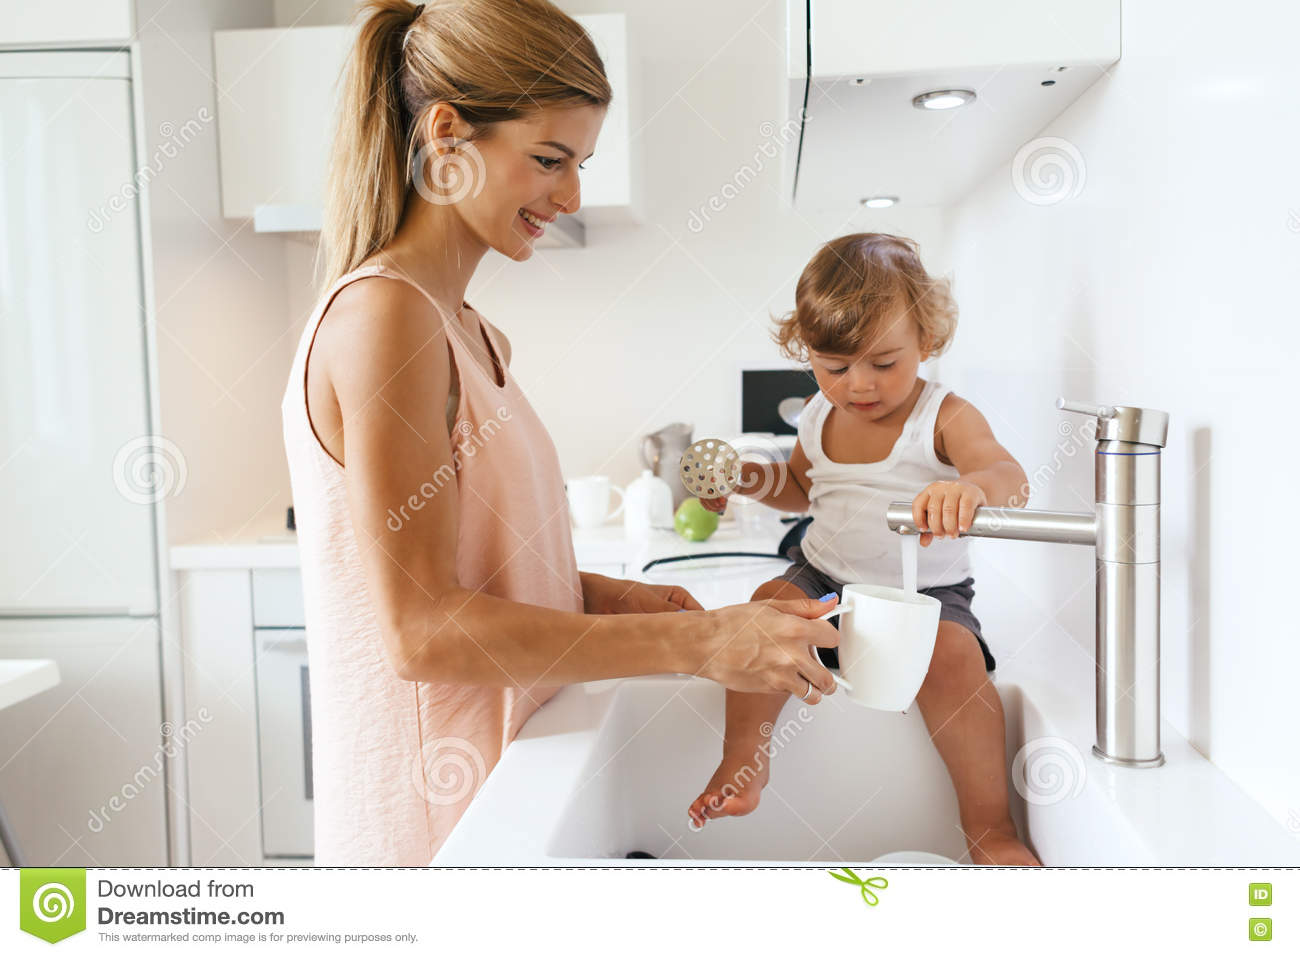 Mom With Child In The Kitchen Stock Image - Image of cooking, food ...